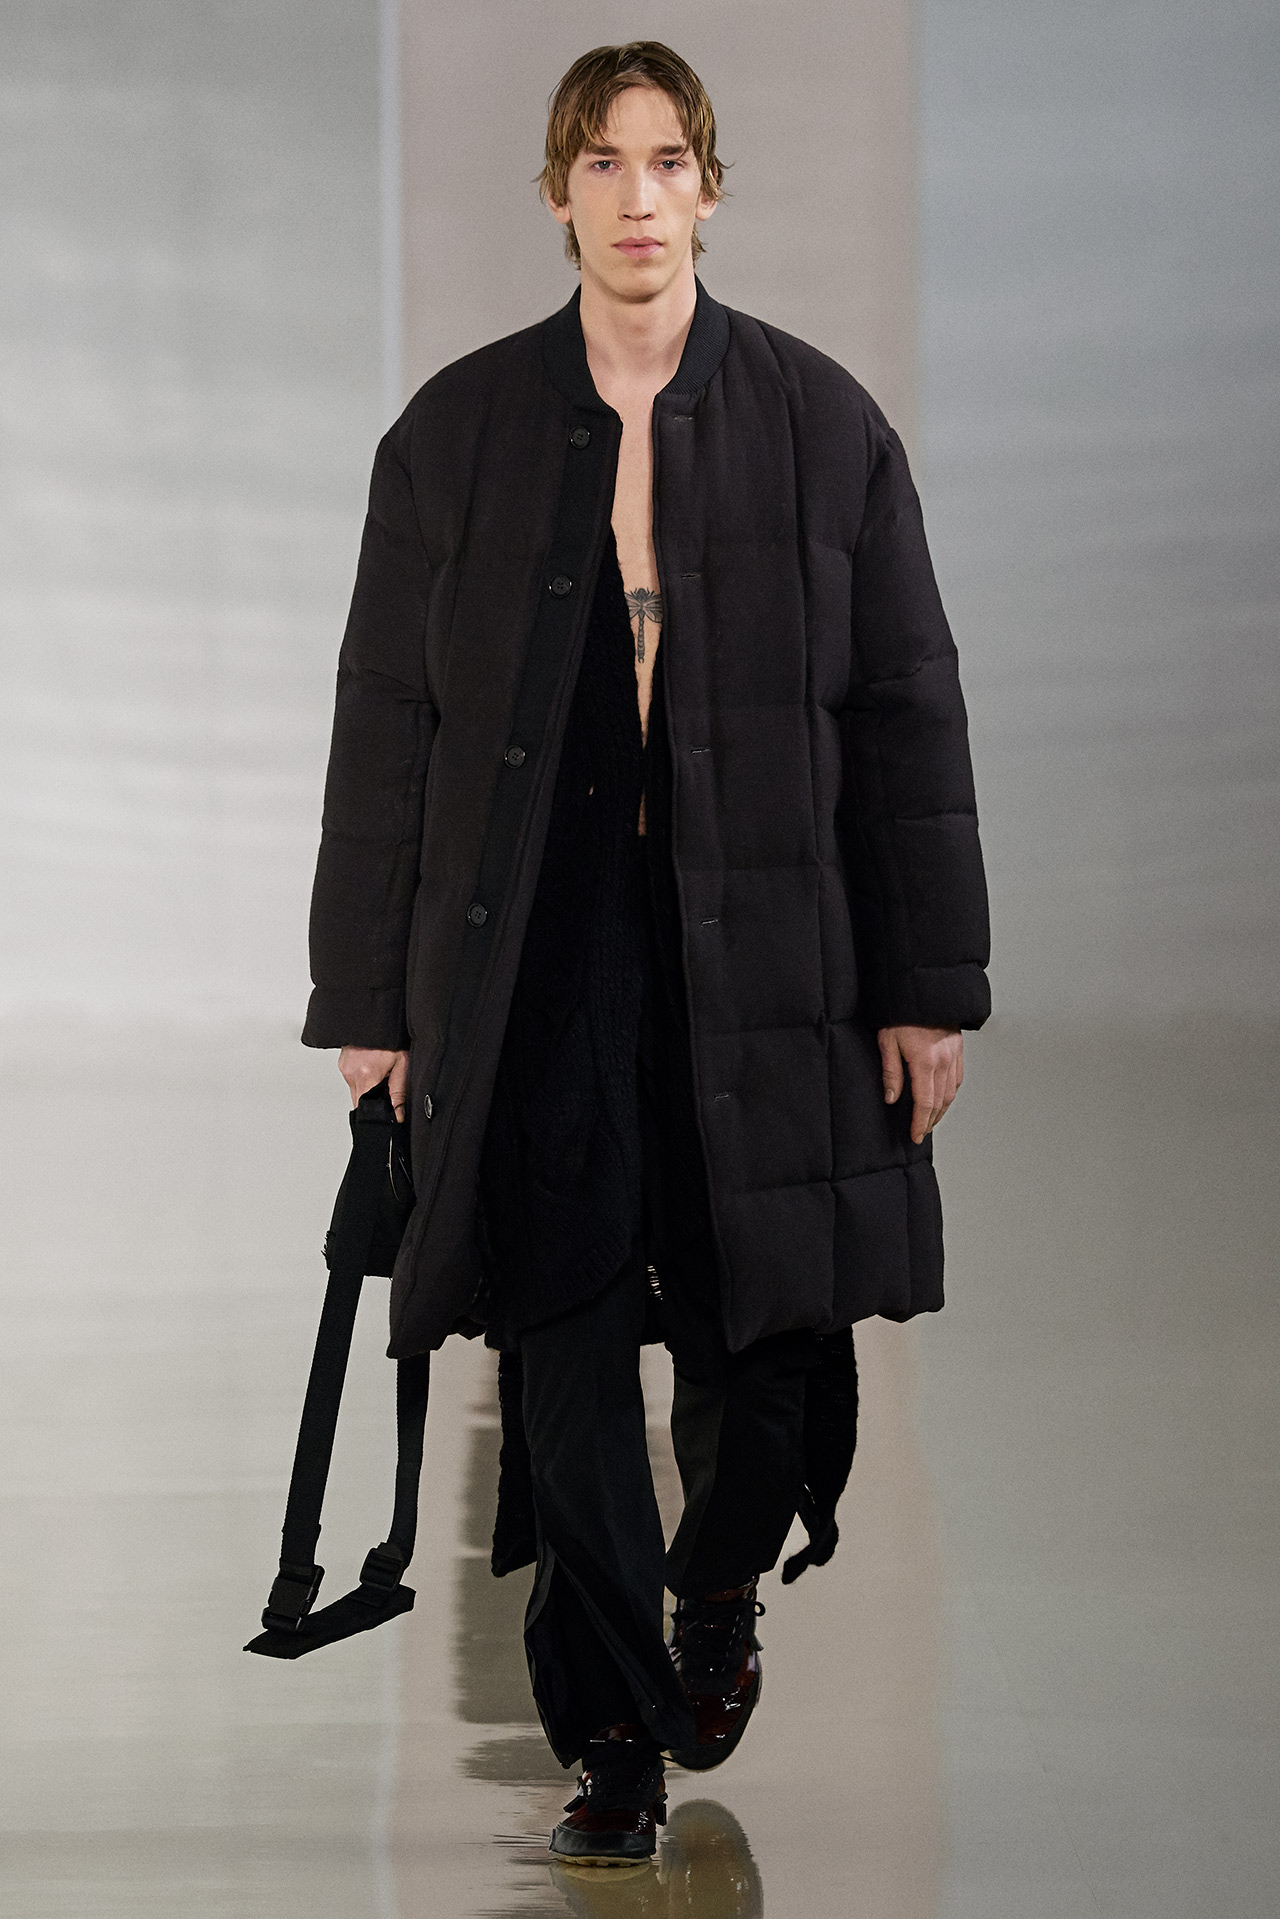 Look Fall/Winter 2020, image 11